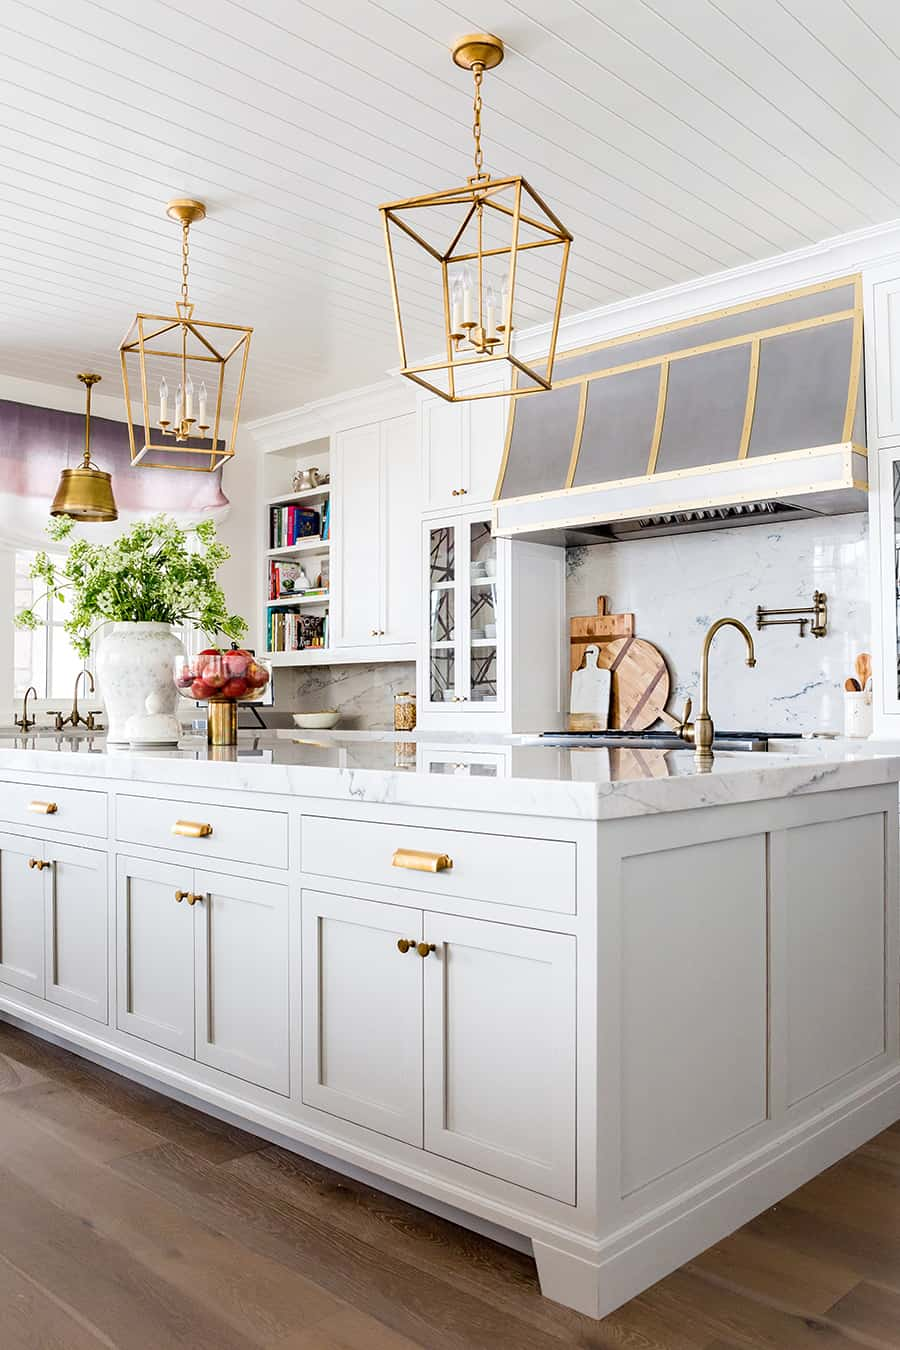 Gold kitchen fixtures Sophisticated Ways To Decorate Your Home With Gold Finish Outdated Décor